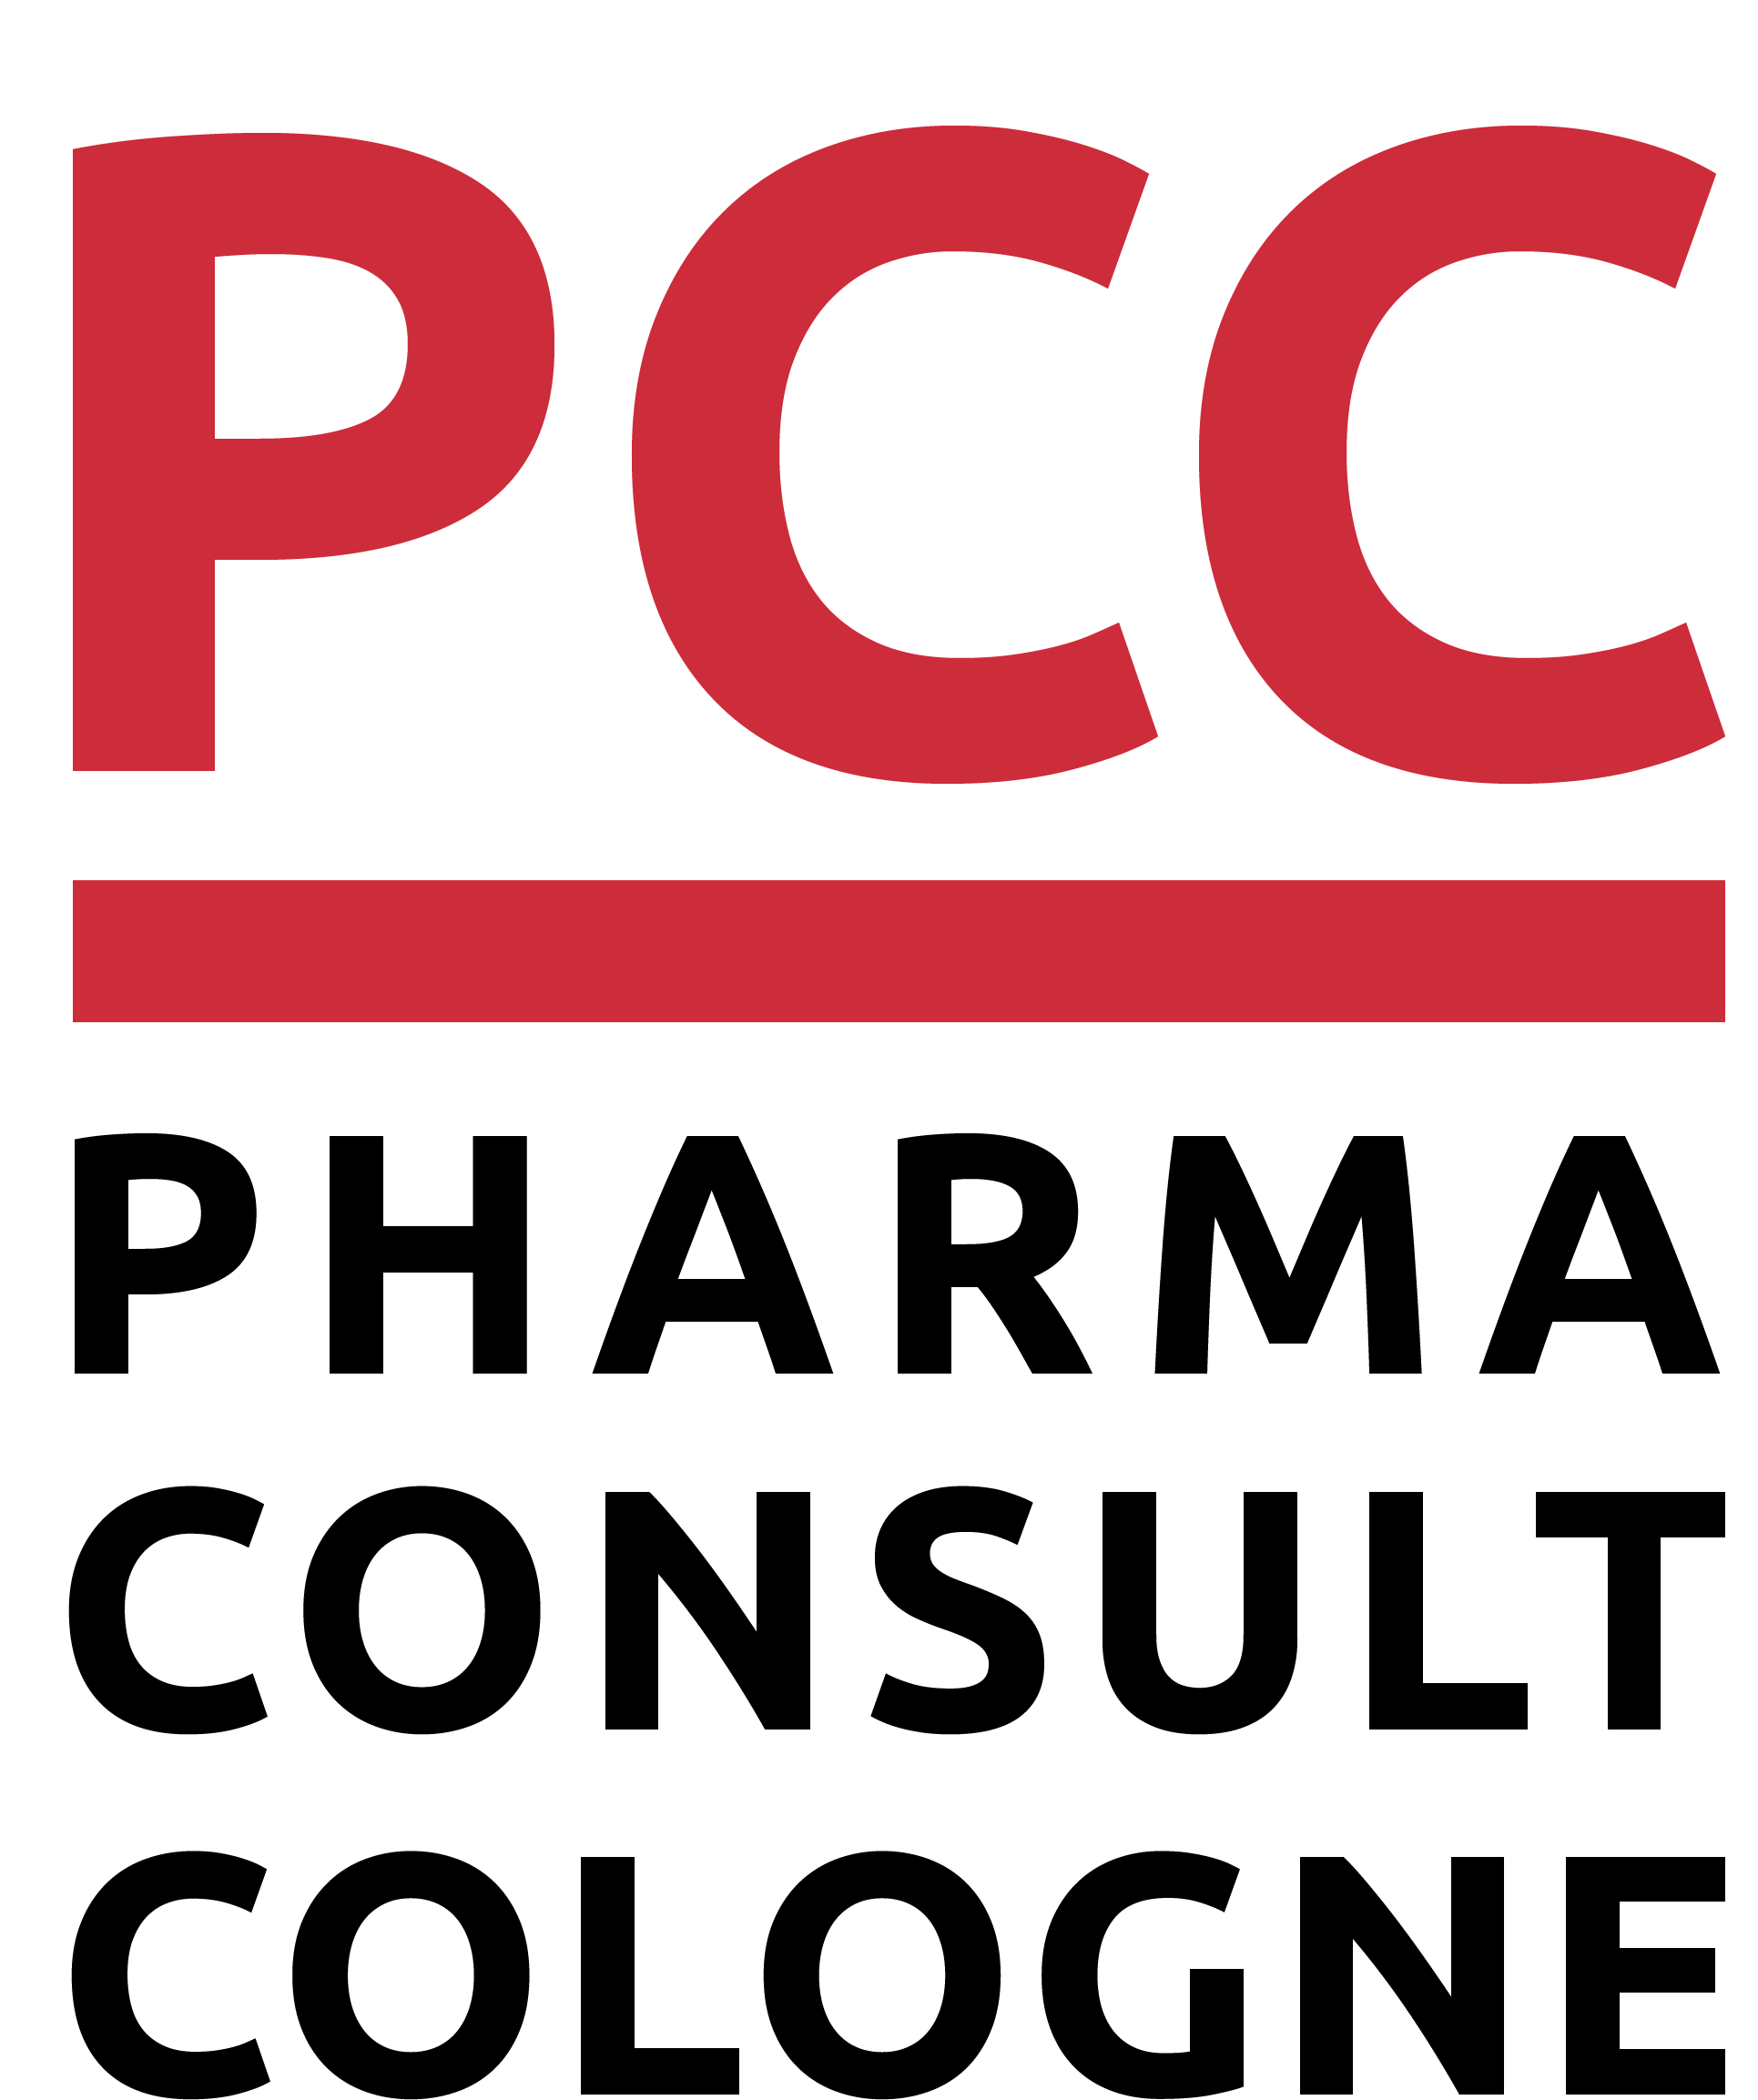 PCC apothekenmarketing